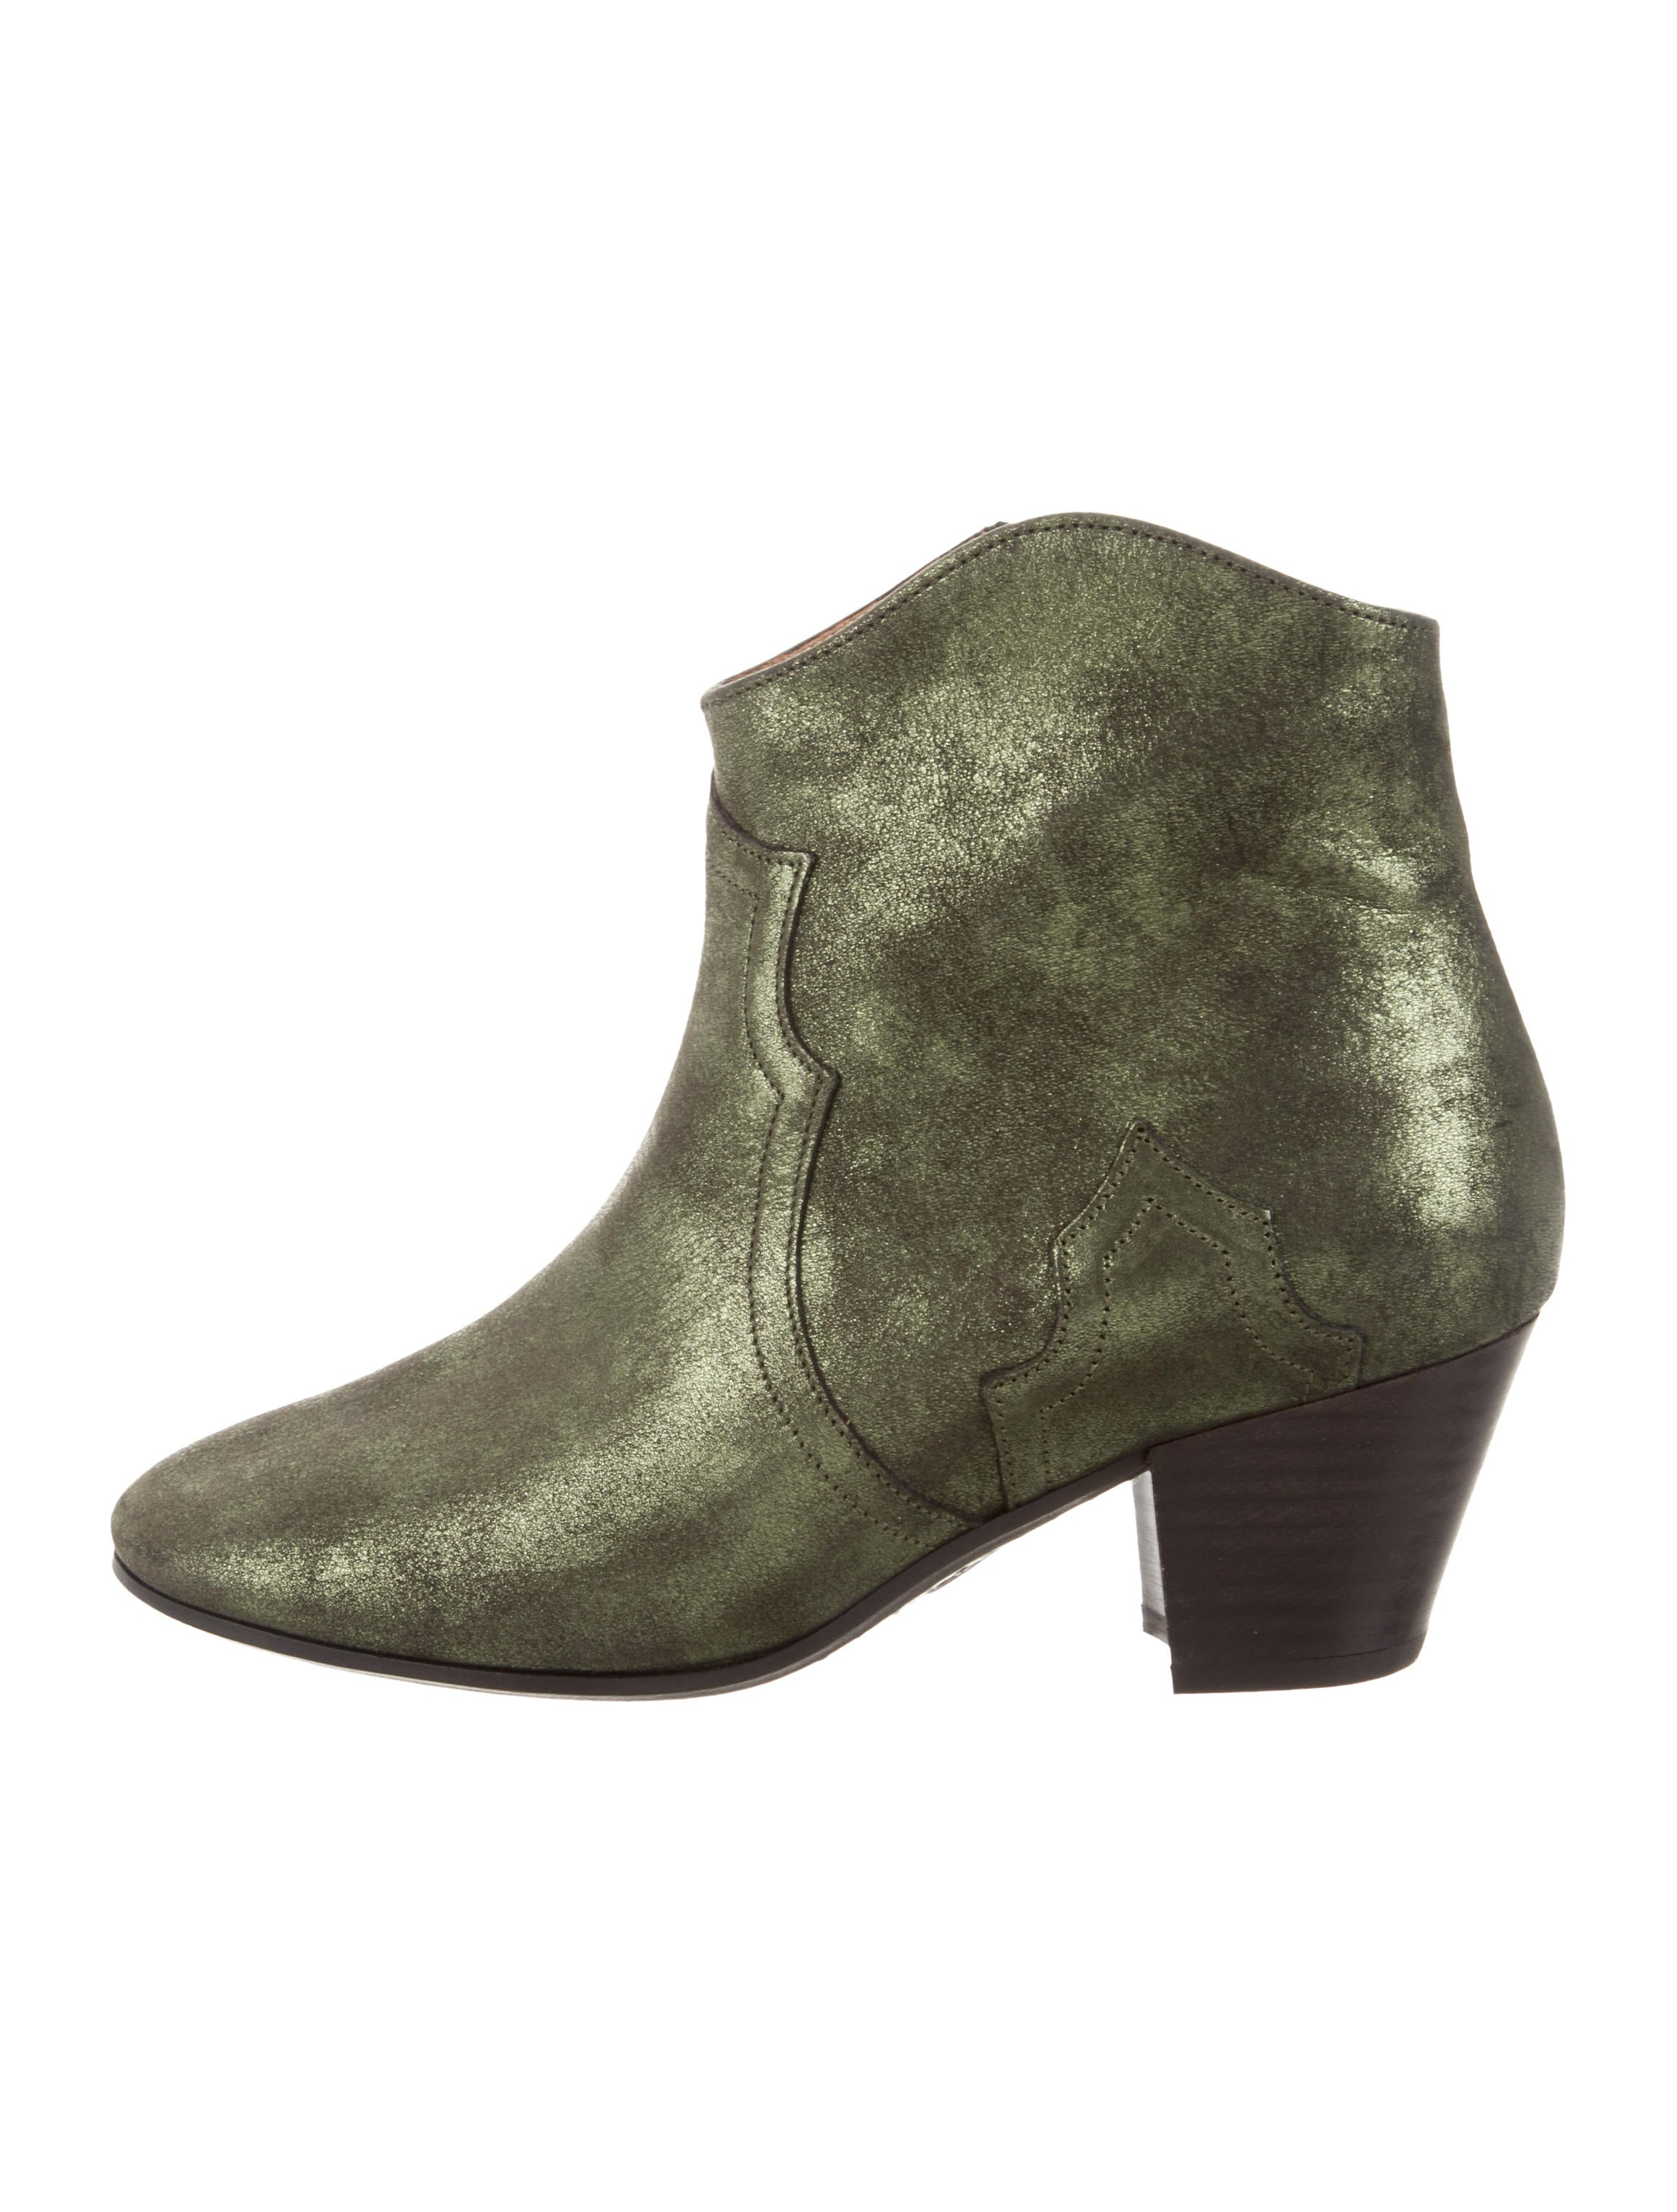 Isabel Marant Dicker Metallic Suede Booties w/ Tags discount 2014 new free shipping tumblr cheap sale view discounts footlocker JIzYJRb